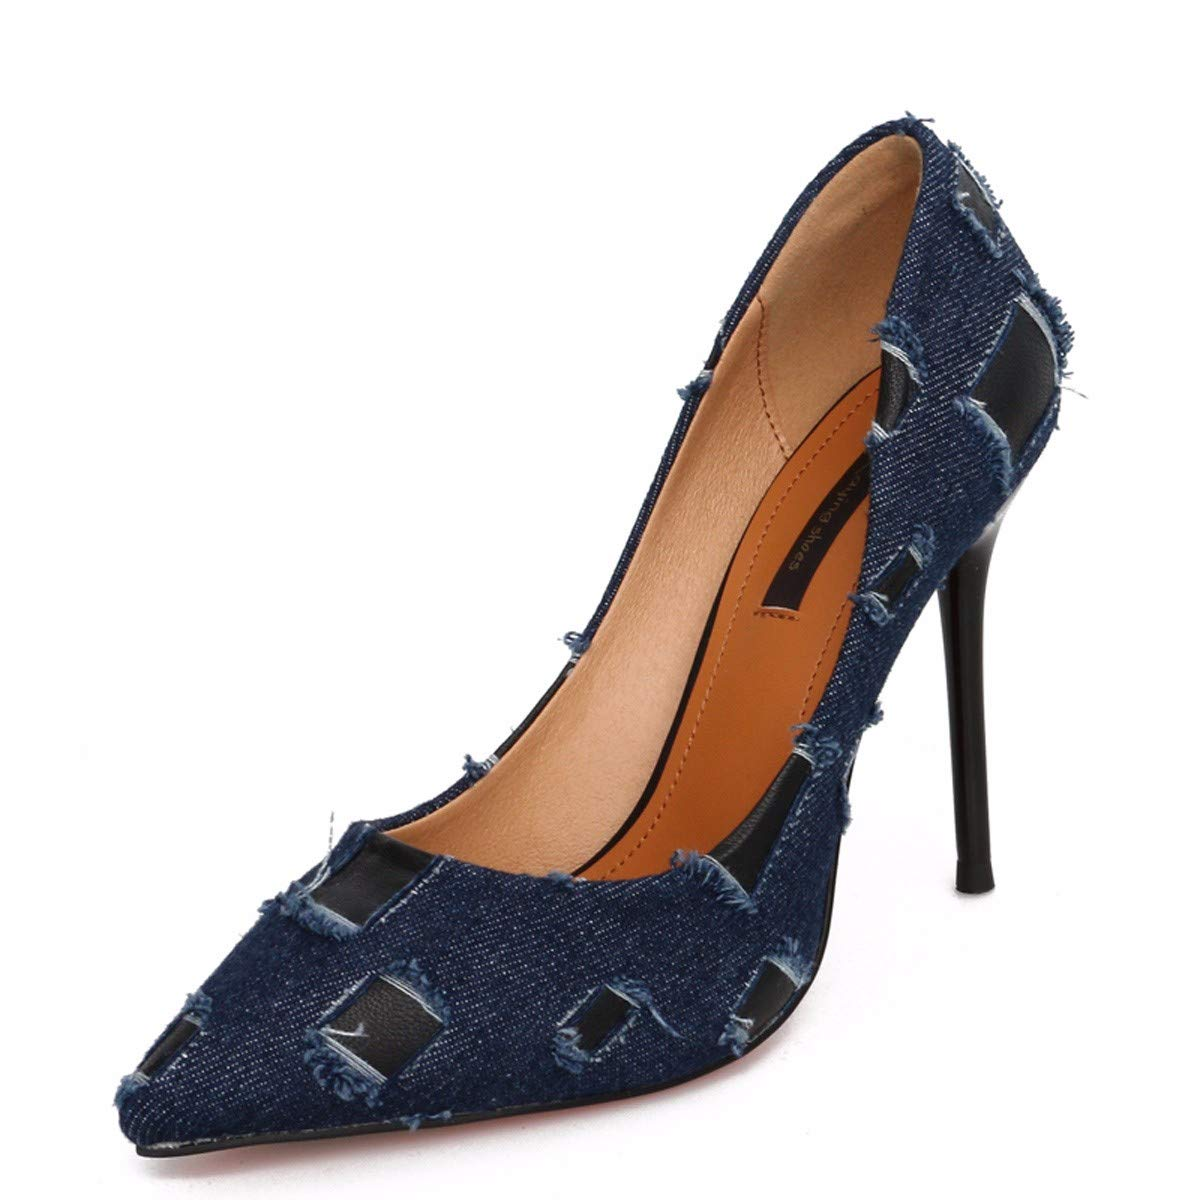 SFSYDDY-Summer Personality Holes Cloth Sexy Fine 10Cm High Heels Fashion Pointed Shallow Women's Shoes.Thirty-Seven Blue Color